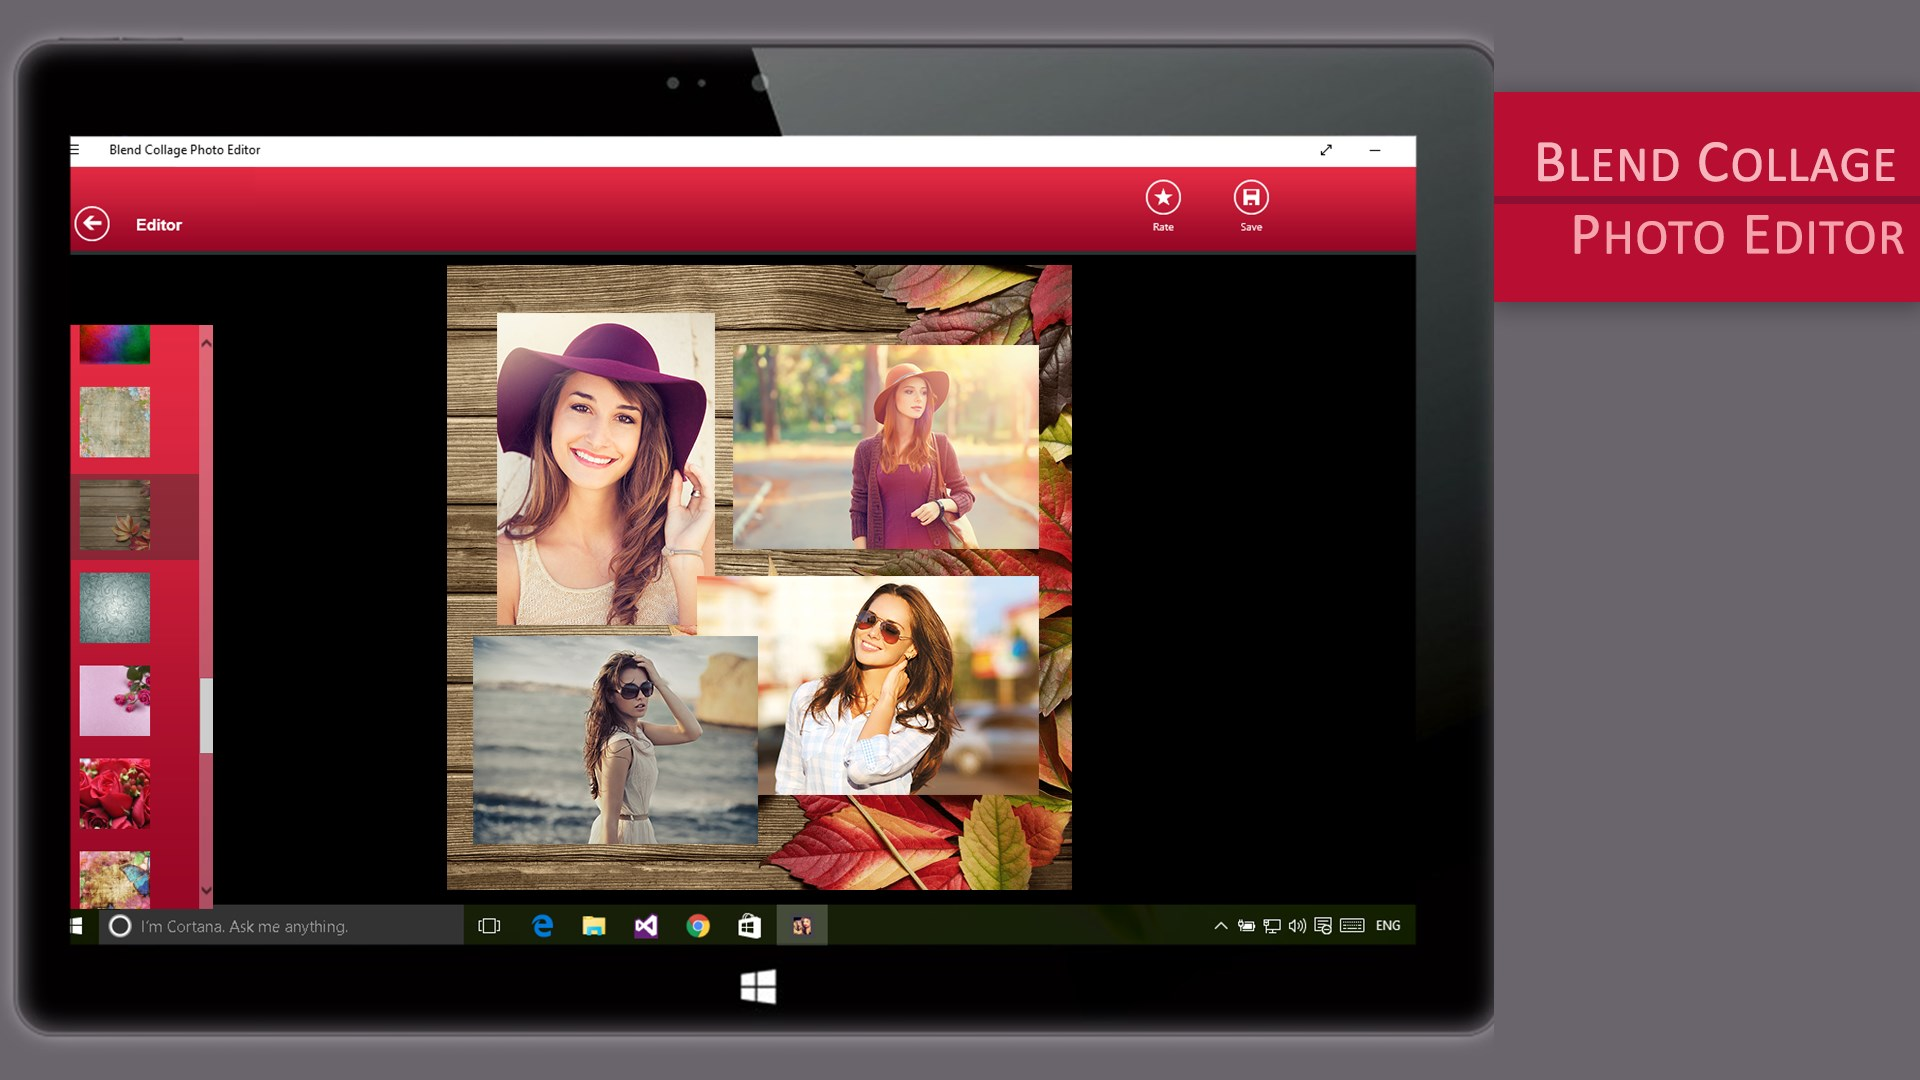 Buy Blend Collage Photo Editor - Microsoft Store